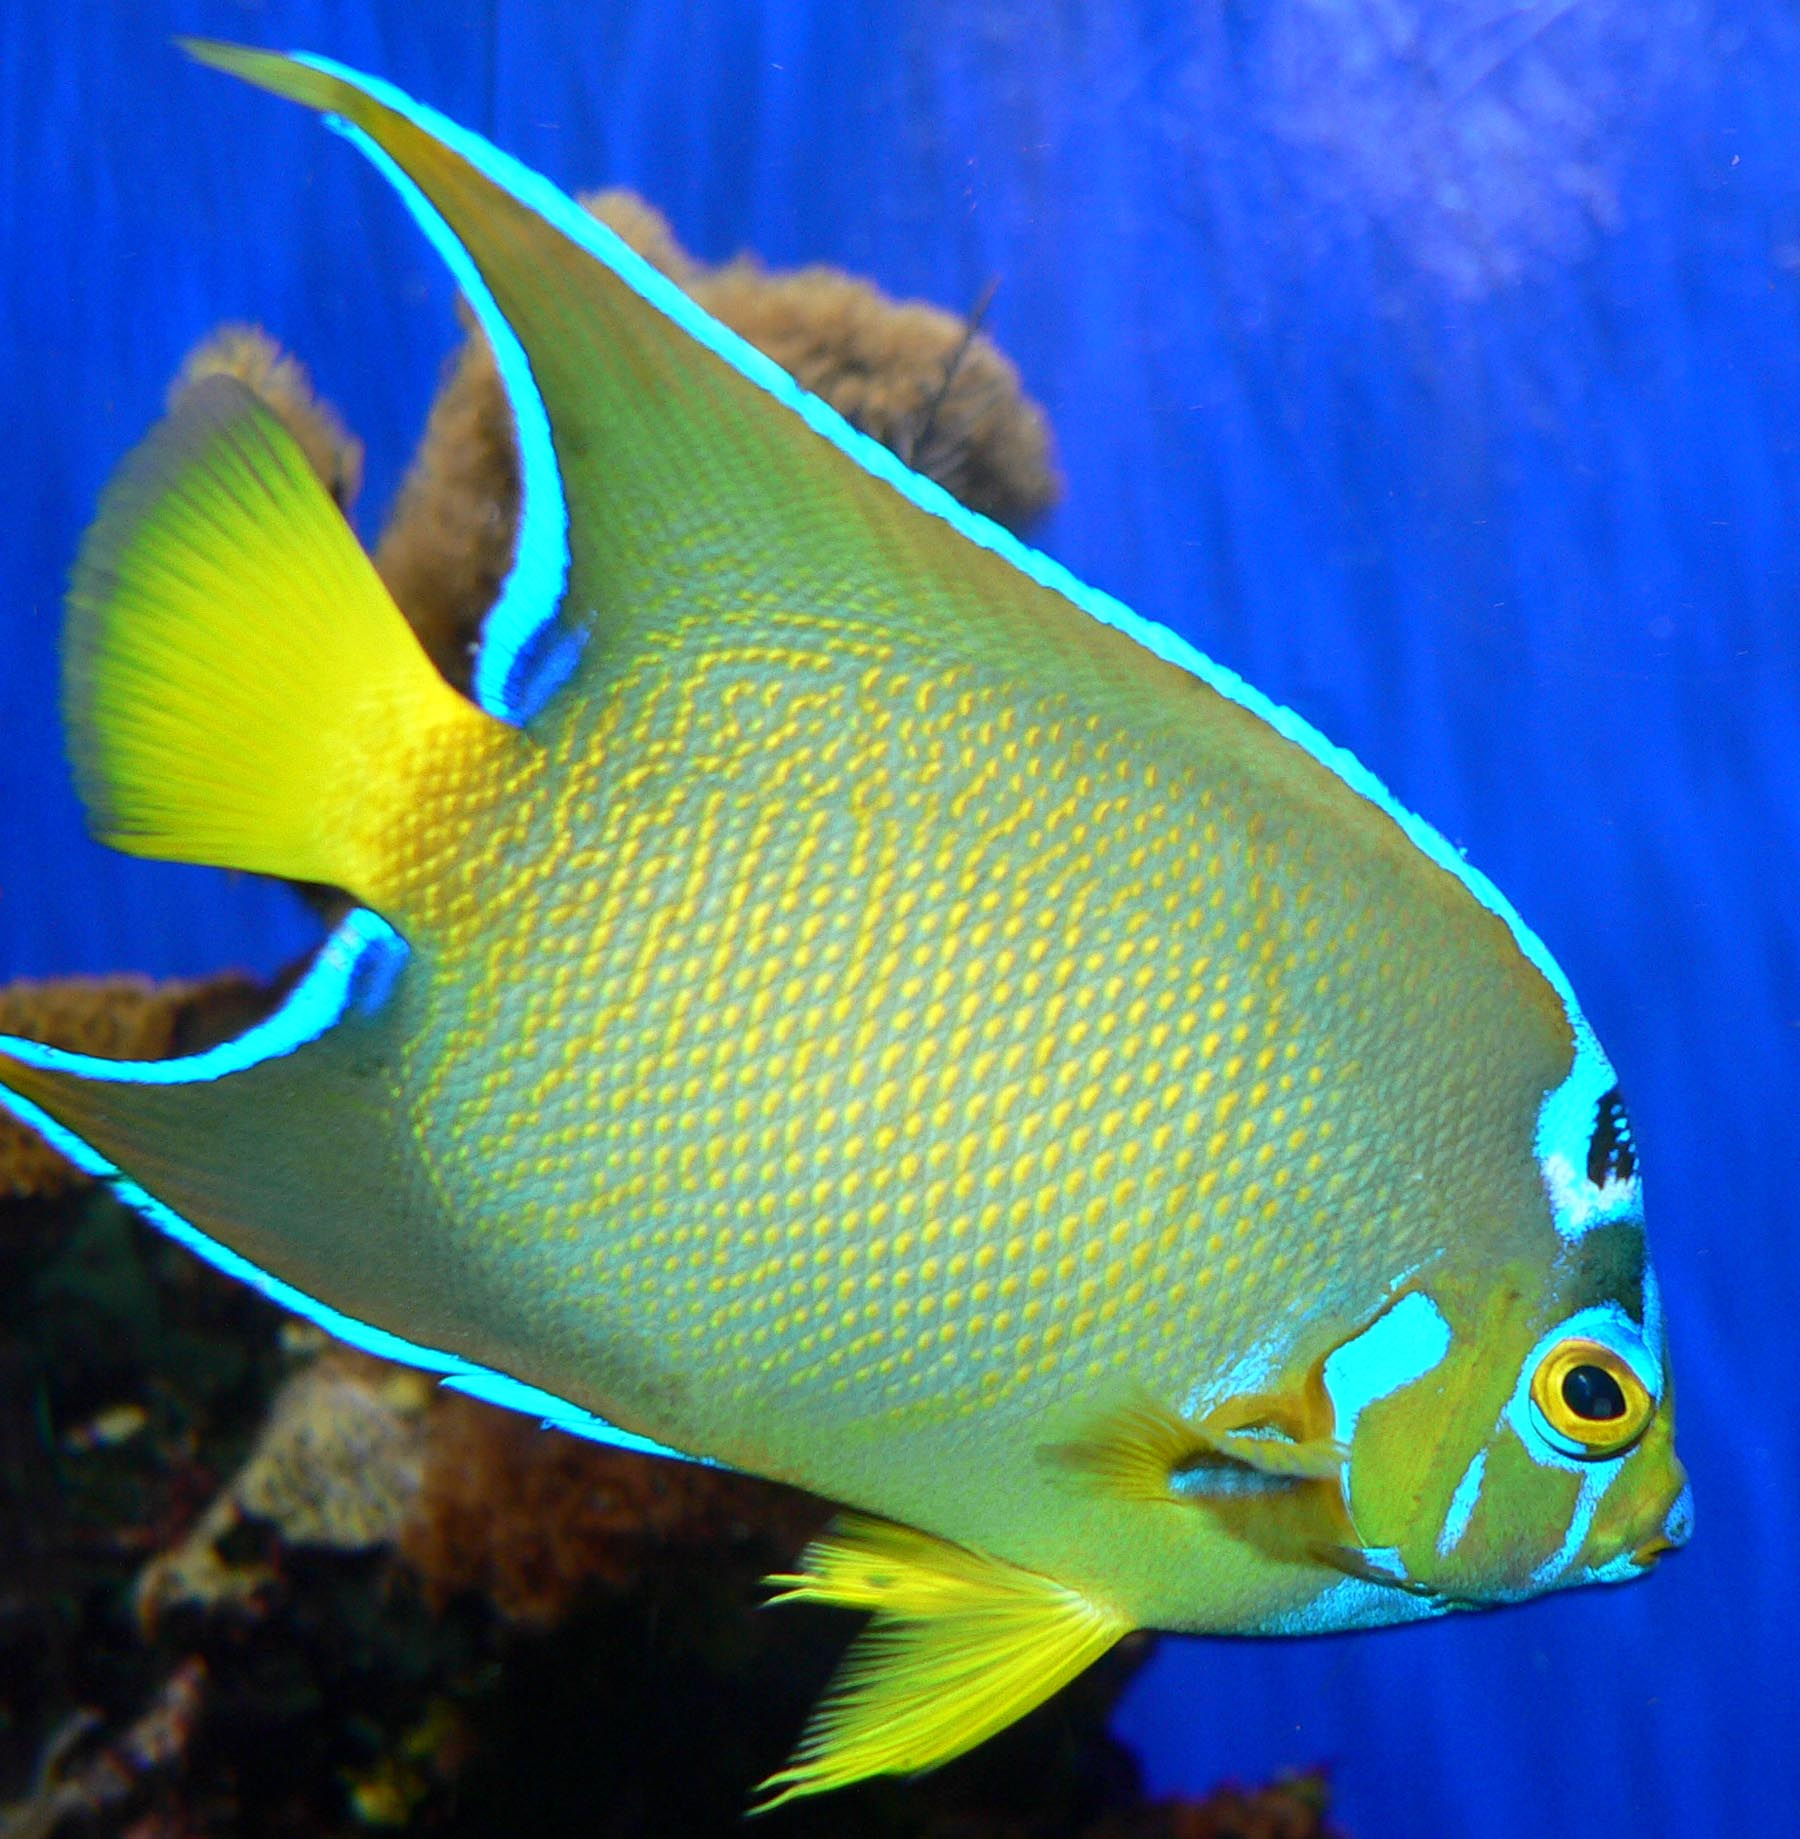 List of marine aquarium fish species wikipedia for Marine fish tanks